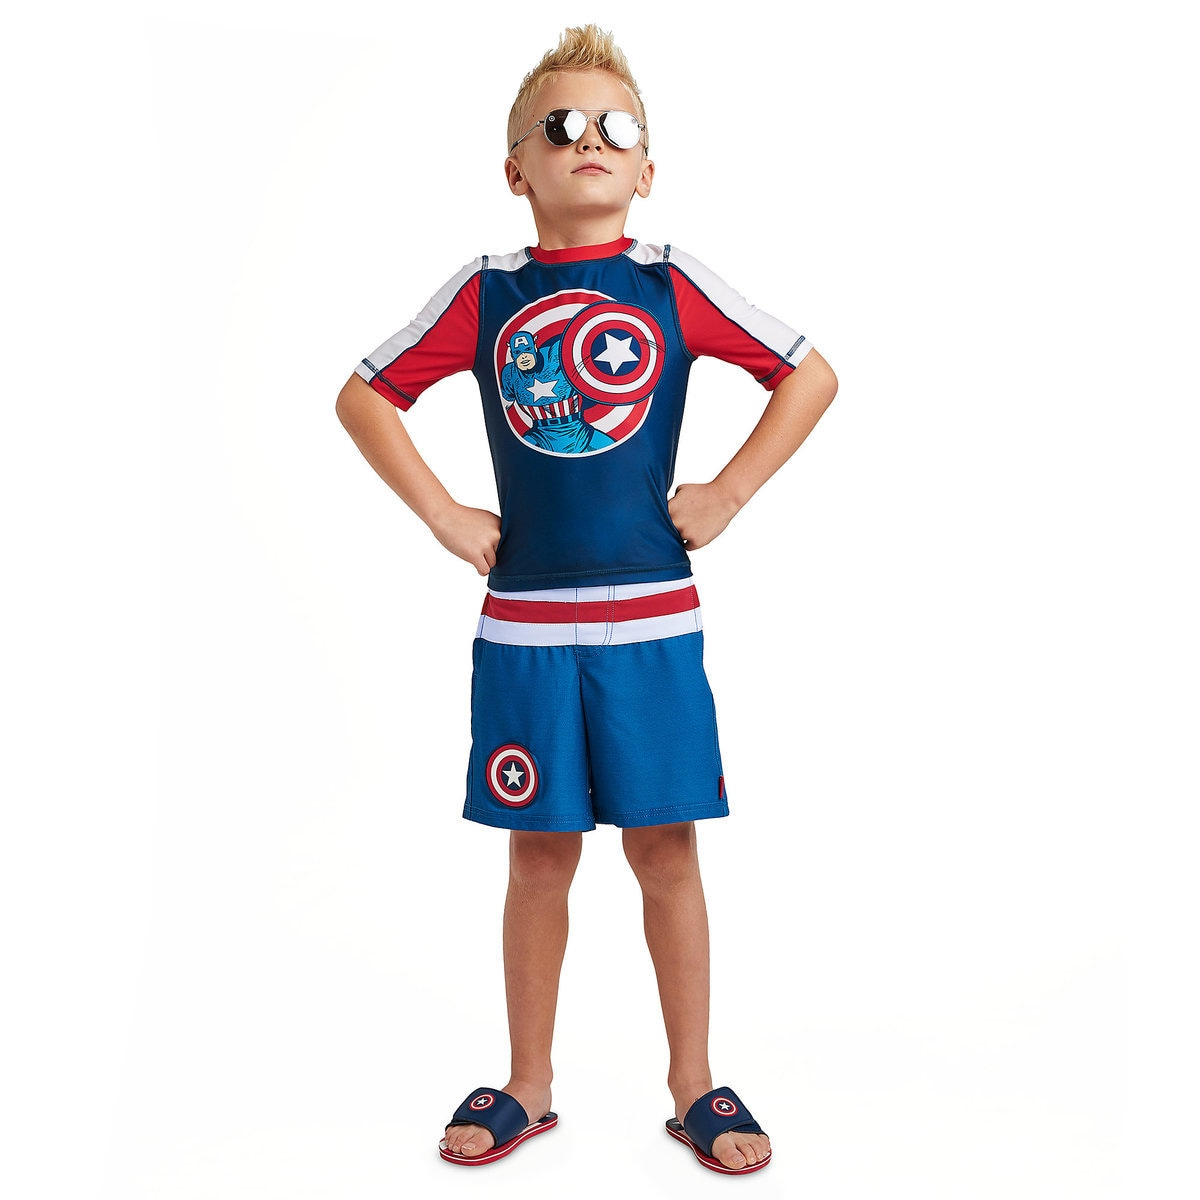 c130321b61 Product Image of Captain America Swim Trunks for Kids # 2